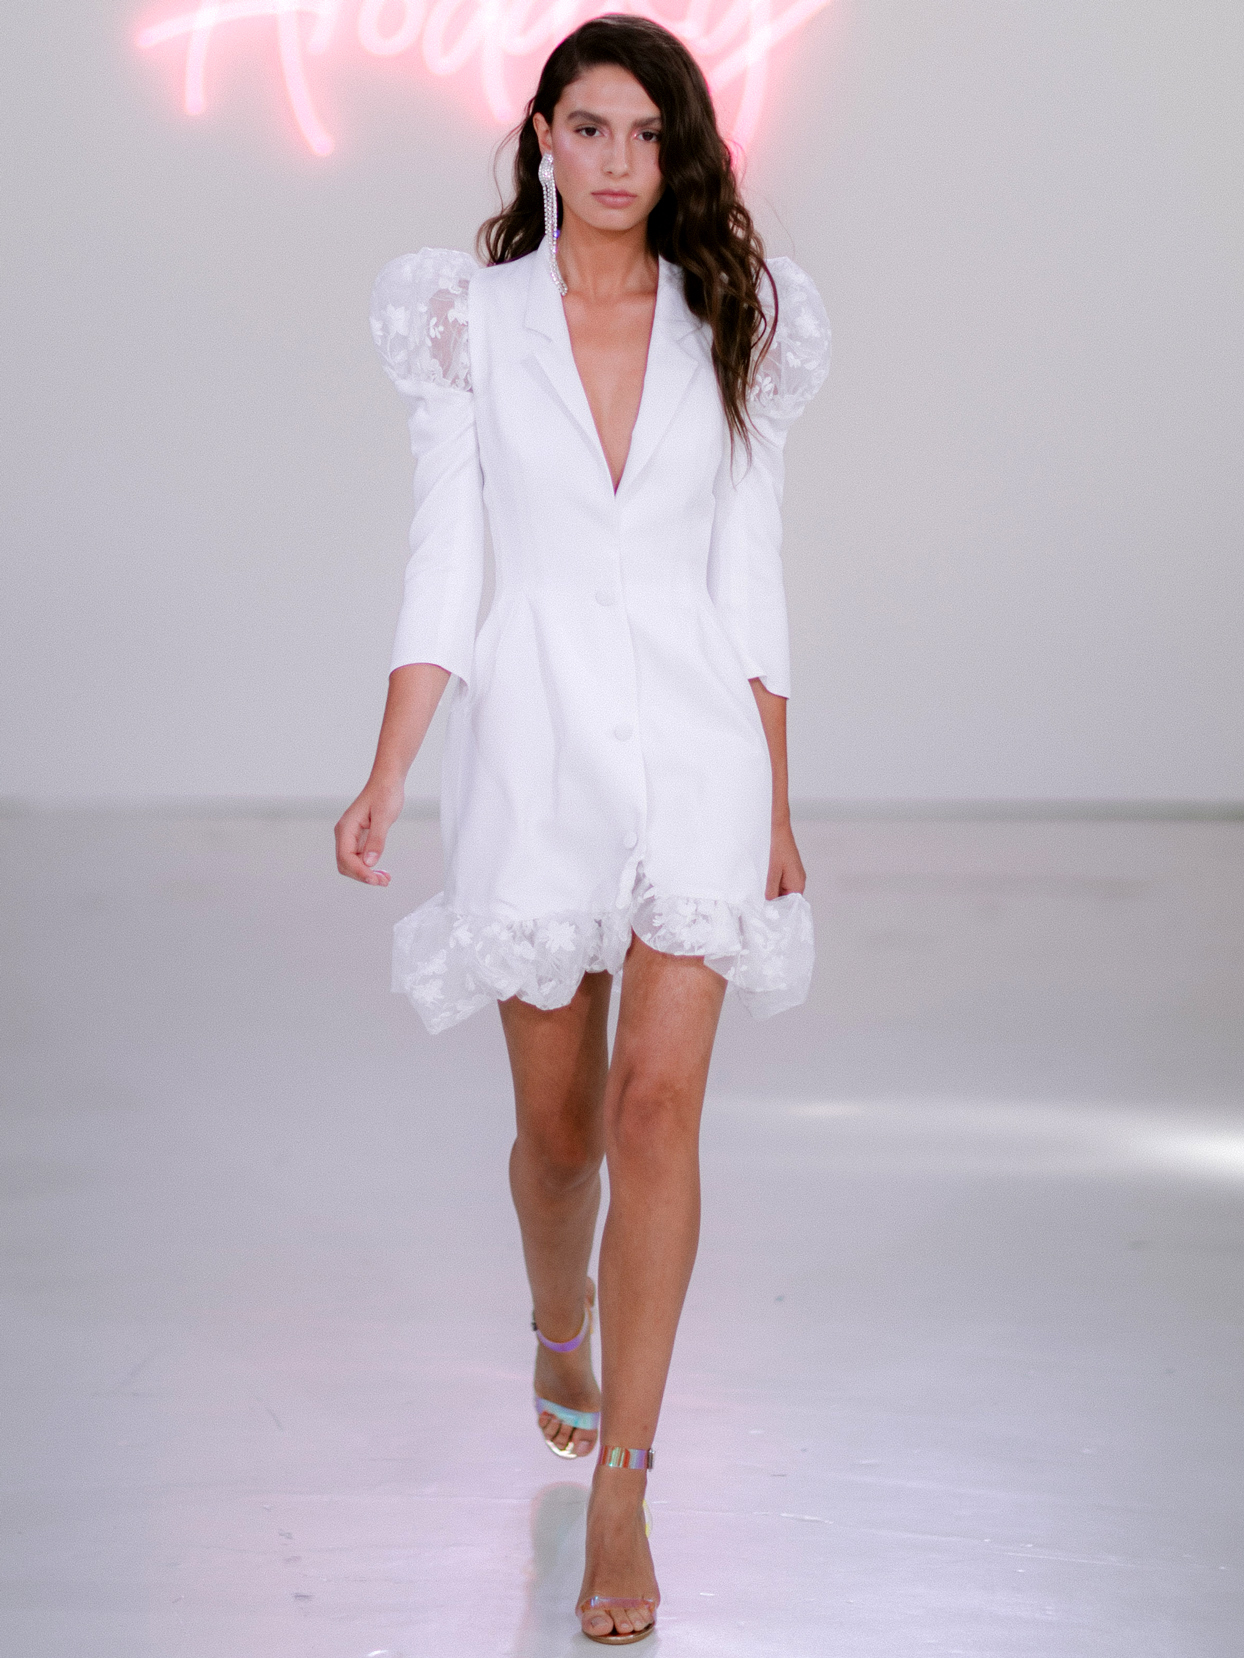 Rime Arodaky X The Mews Bridal button up mini three-quarter sleeves wedding dress fall 2020